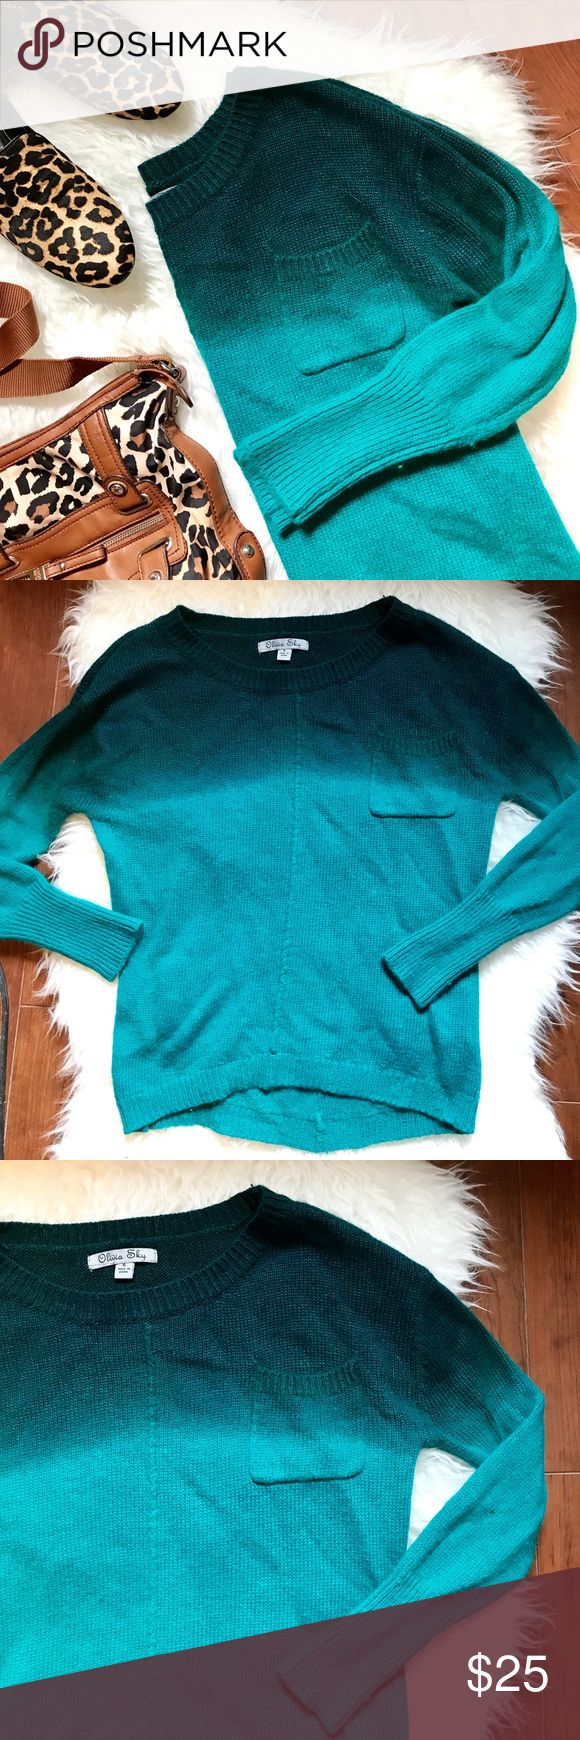 """Olivia Sky Emerald Green Ombré Sweater As the weather gets colder the styles only get hotter. Snuggle up in this gorgeous emerald sweater. With its cozy material, trendy color and Ombré design this sweater is perfect for fall fun. Some pilling.   20"""" Pit to Pit 23"""" Front - 25"""" Back Shoulder to Hem  Also for available from Covershot: Tyler Rodan Purse  ✅ Offers welcome through offer button ✅ Bundles welcome through bundle feature ✅ Questions or comments ❌ No trades, modeling or holds Olivia…"""